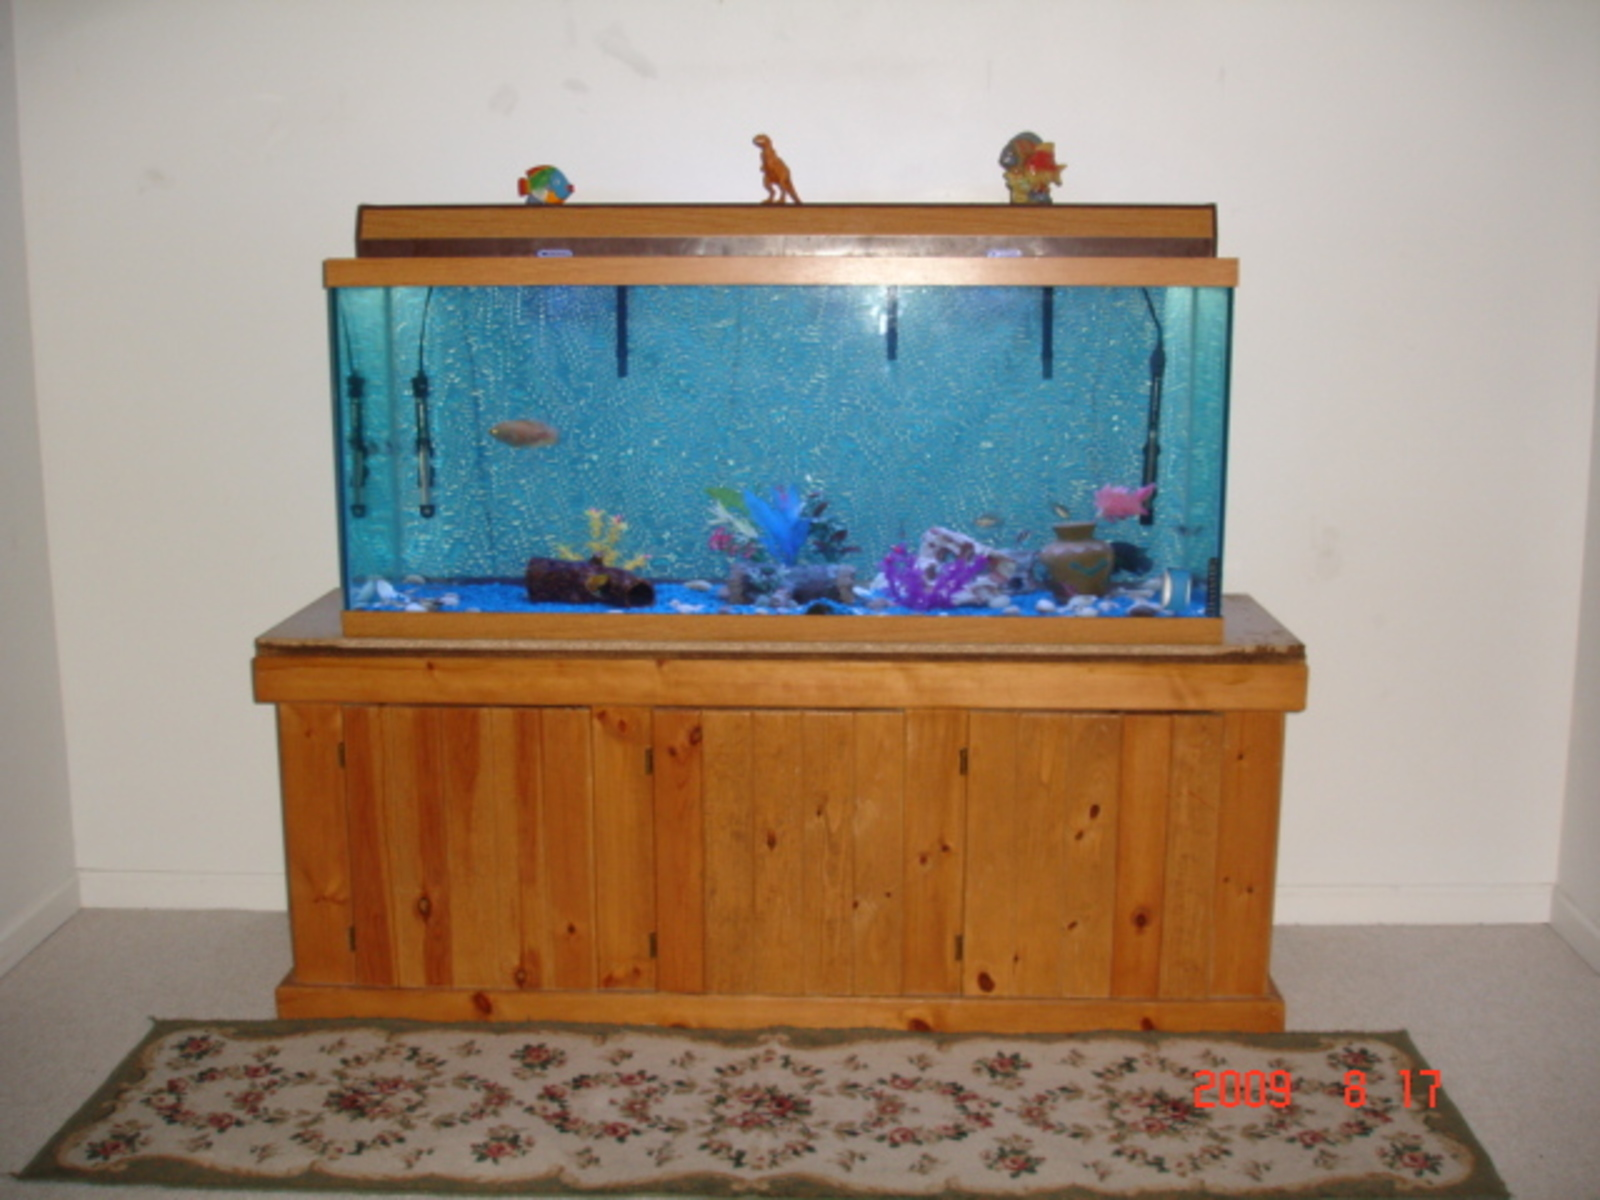 120 Gal. Aquarium====> fixed and running for 4 Days now i!! | by Vu Q